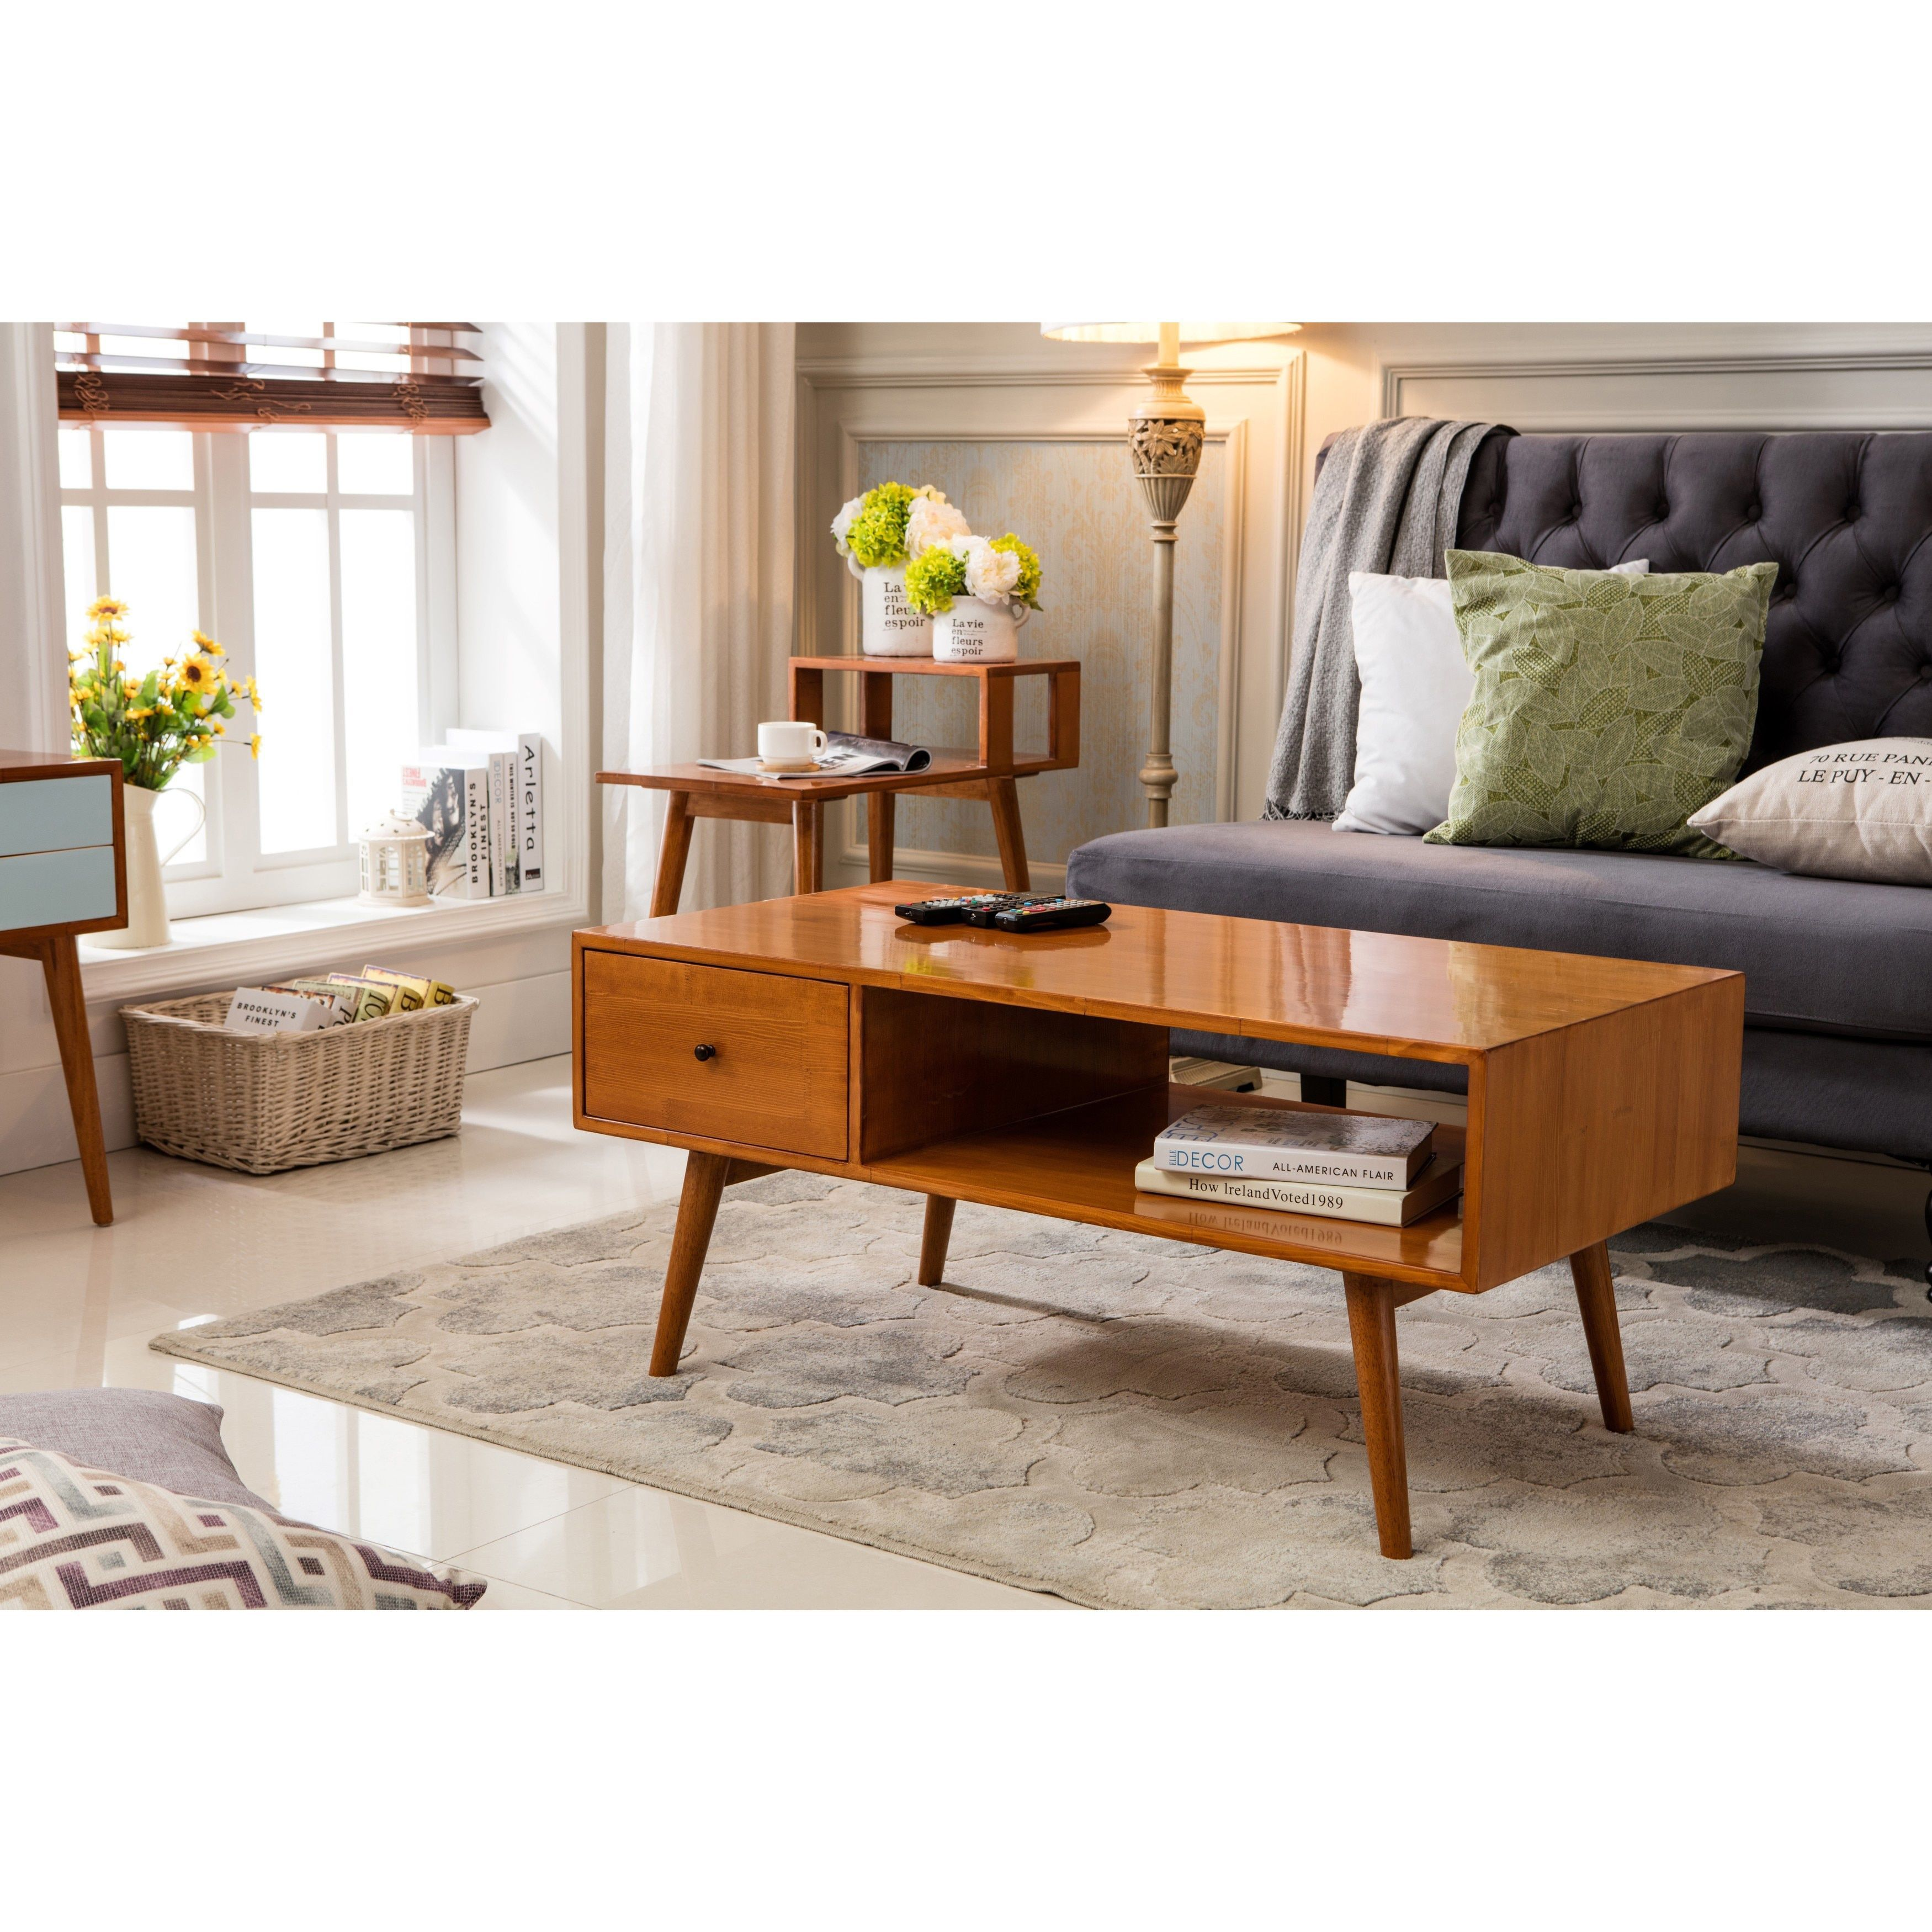 Mid Century Modern Living Room Tables Porthos Home Bowie Mid Century Coffee Table For The Home